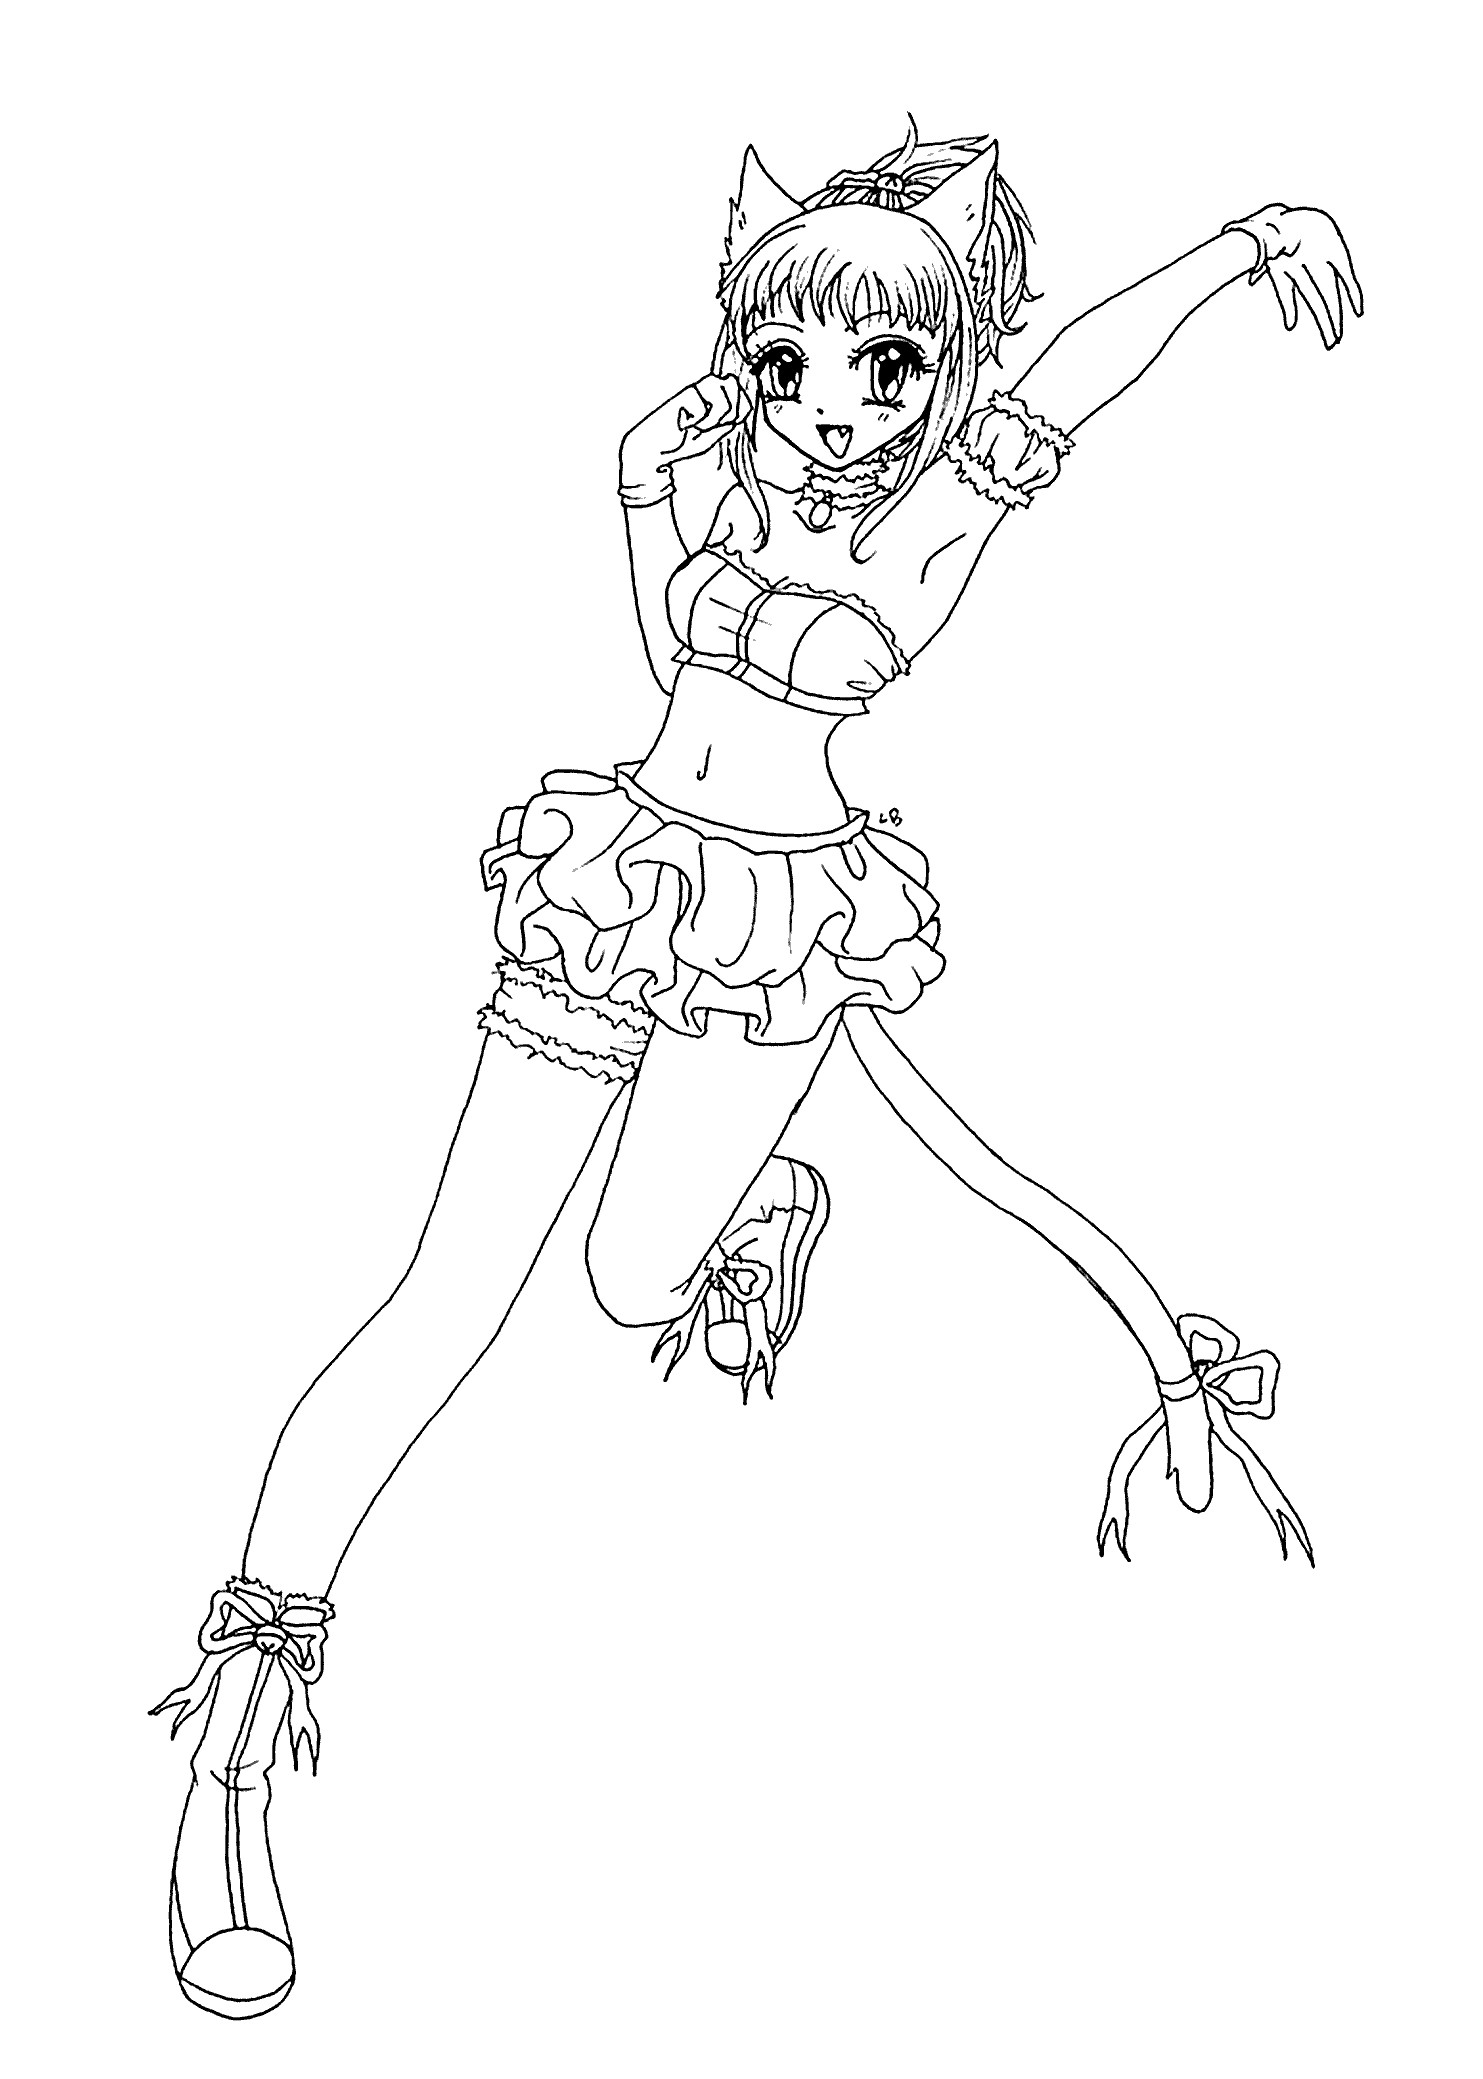 coloring pages for girls cat cute cat coloring pages to download and print for free girls coloring cat for pages